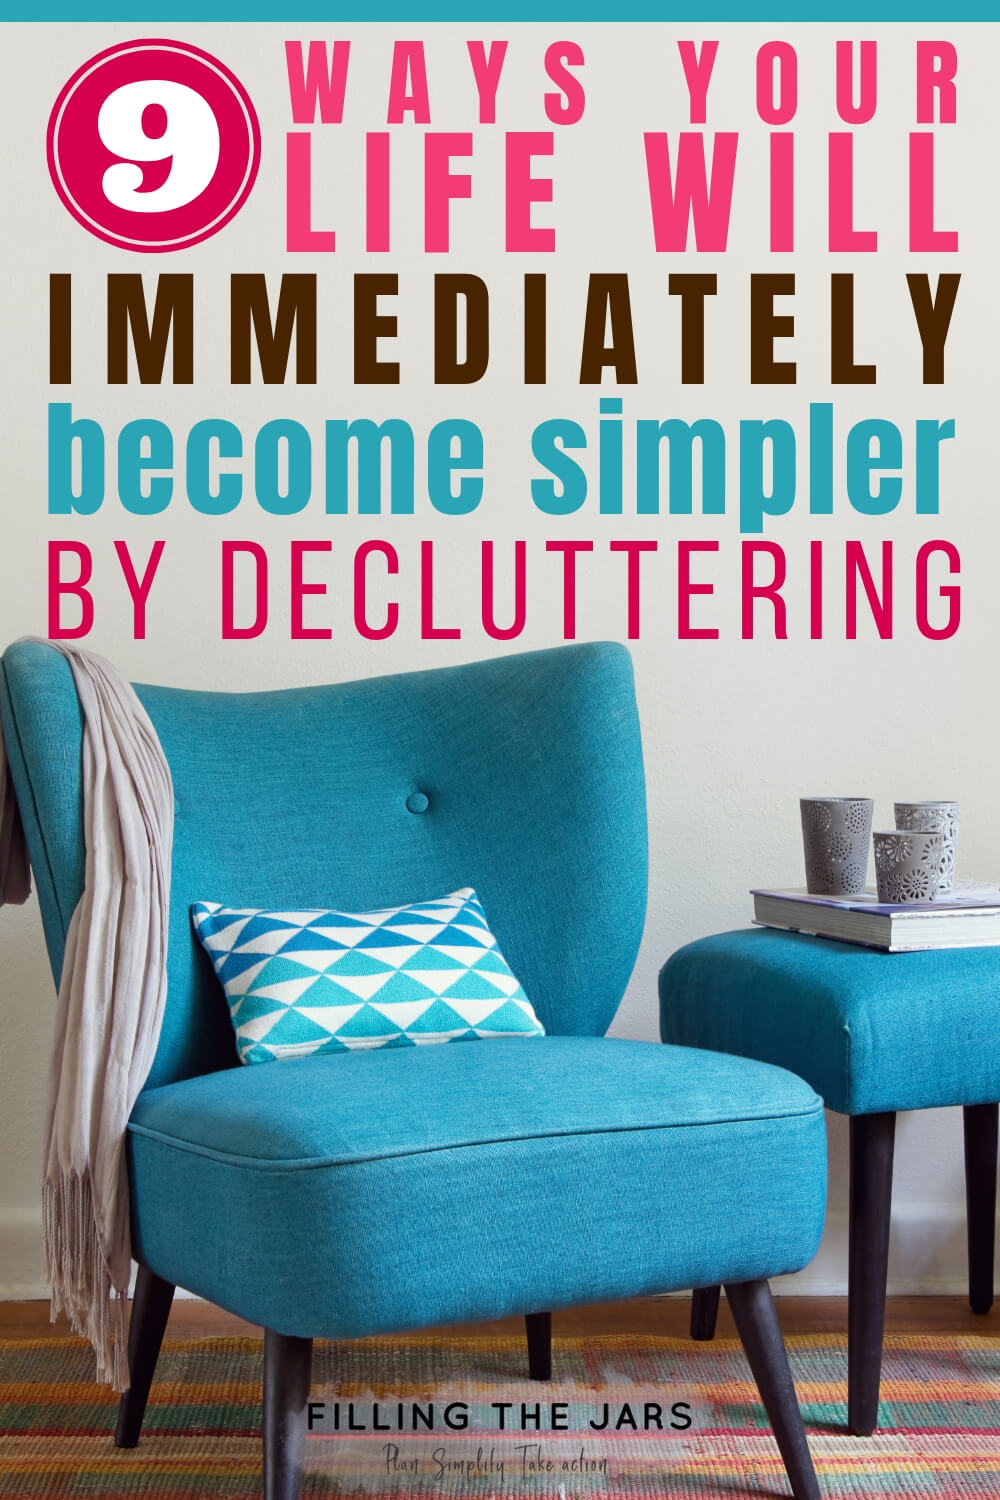 9 Awesome Ways Your Life Will Become Simpler When You Declutter